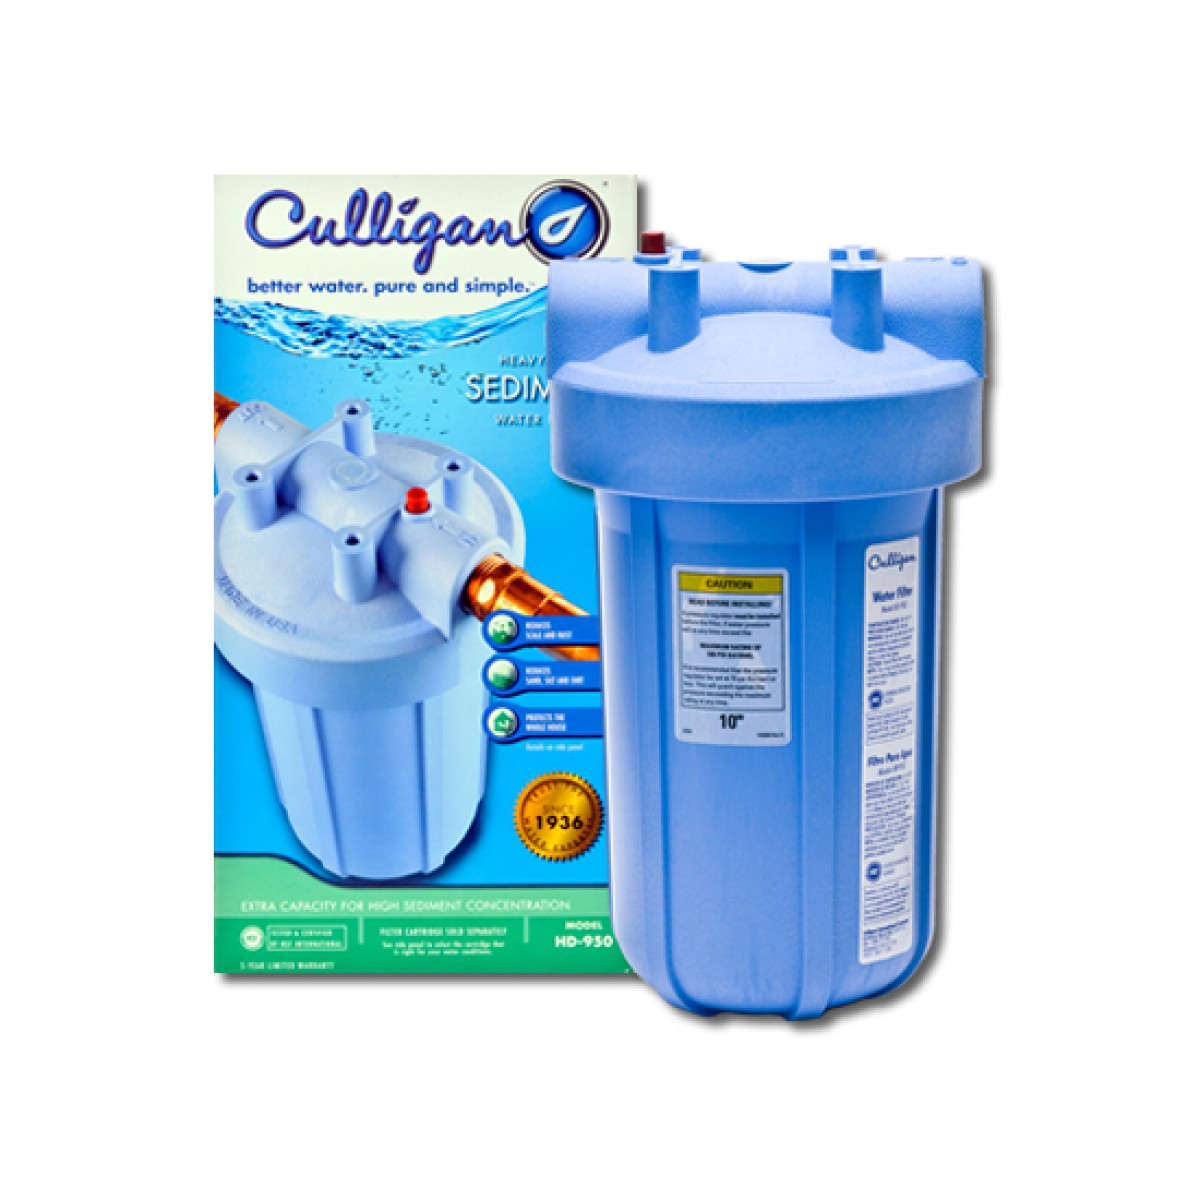 Hd 950 Culligan Whole House Filter System